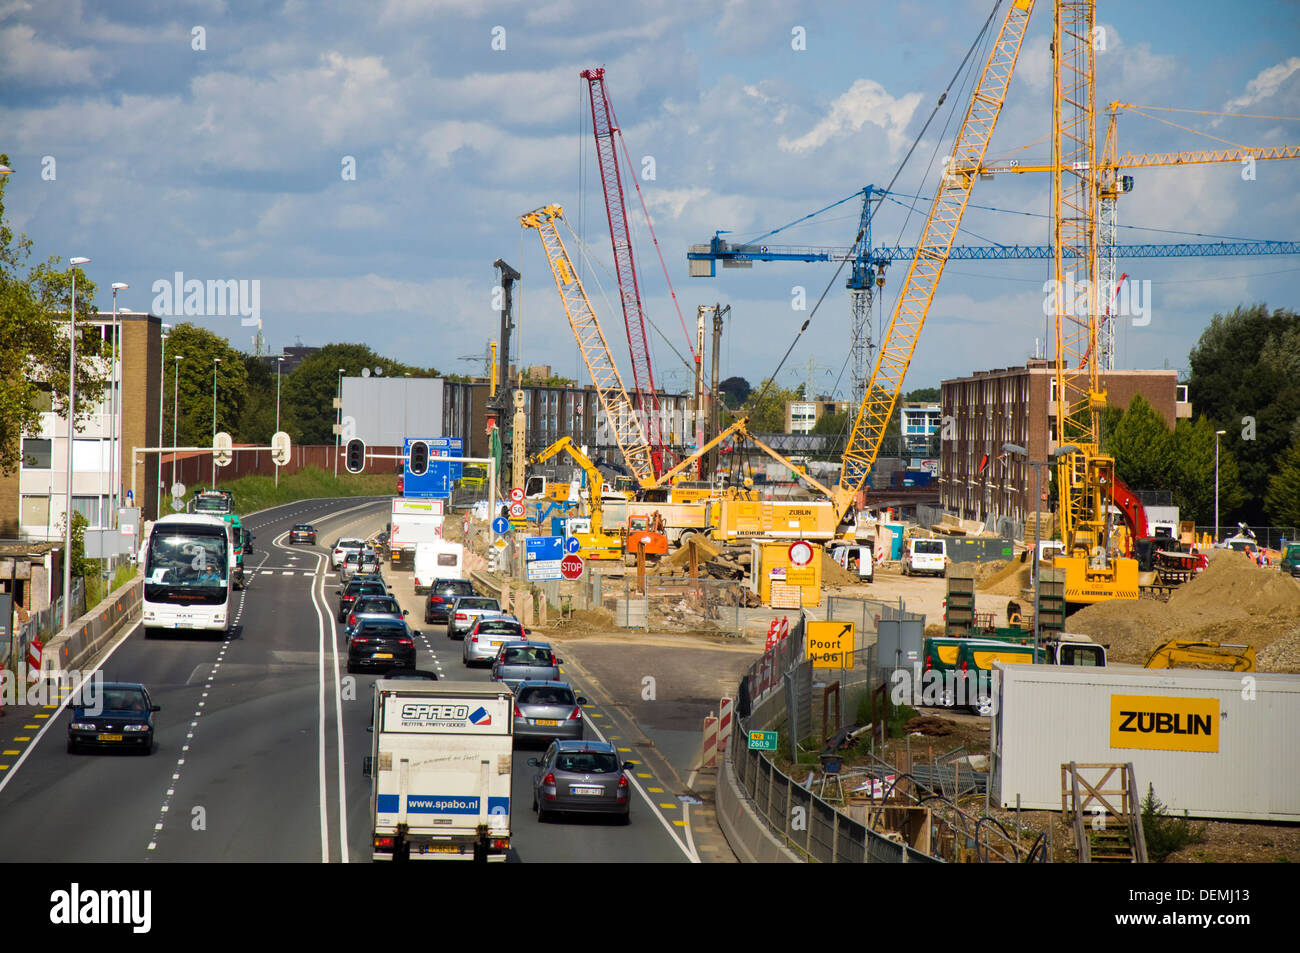 Construction work underway on the A2 tunnel road project at Maastricht Netherlands - Stock Image